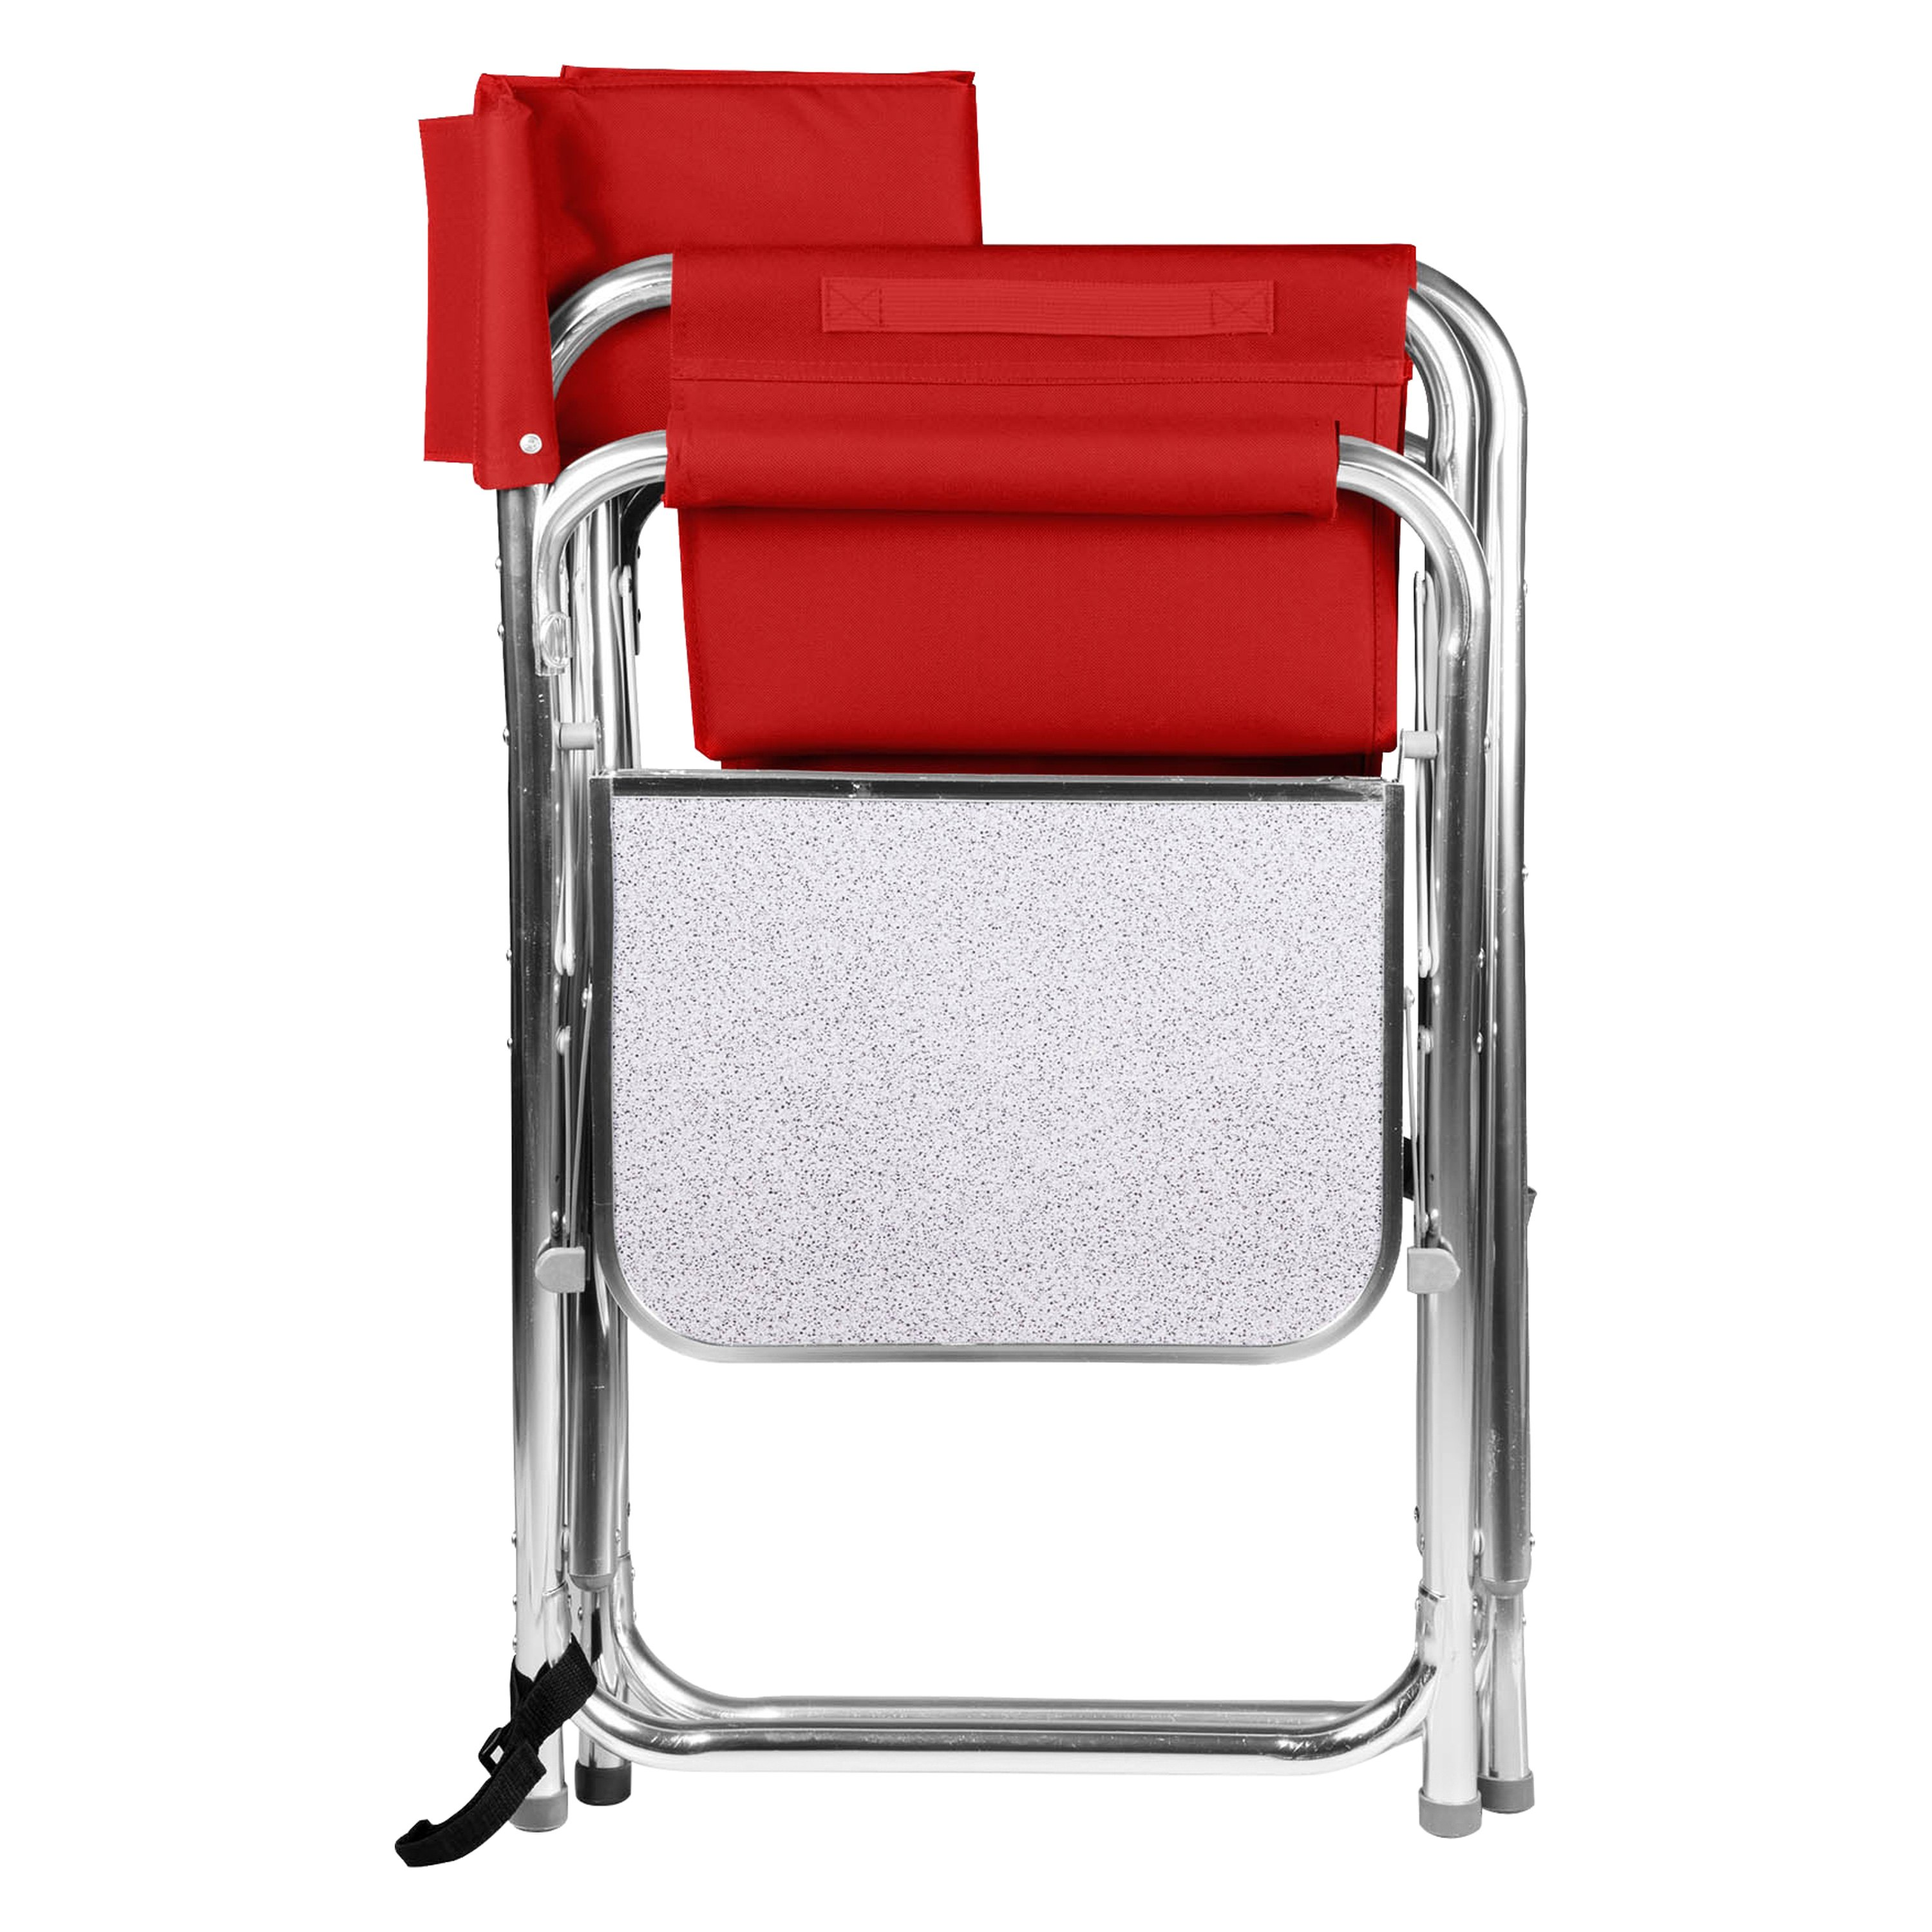 picnic time chair parts beach bathroom accessories 809 00 100 000 red sports